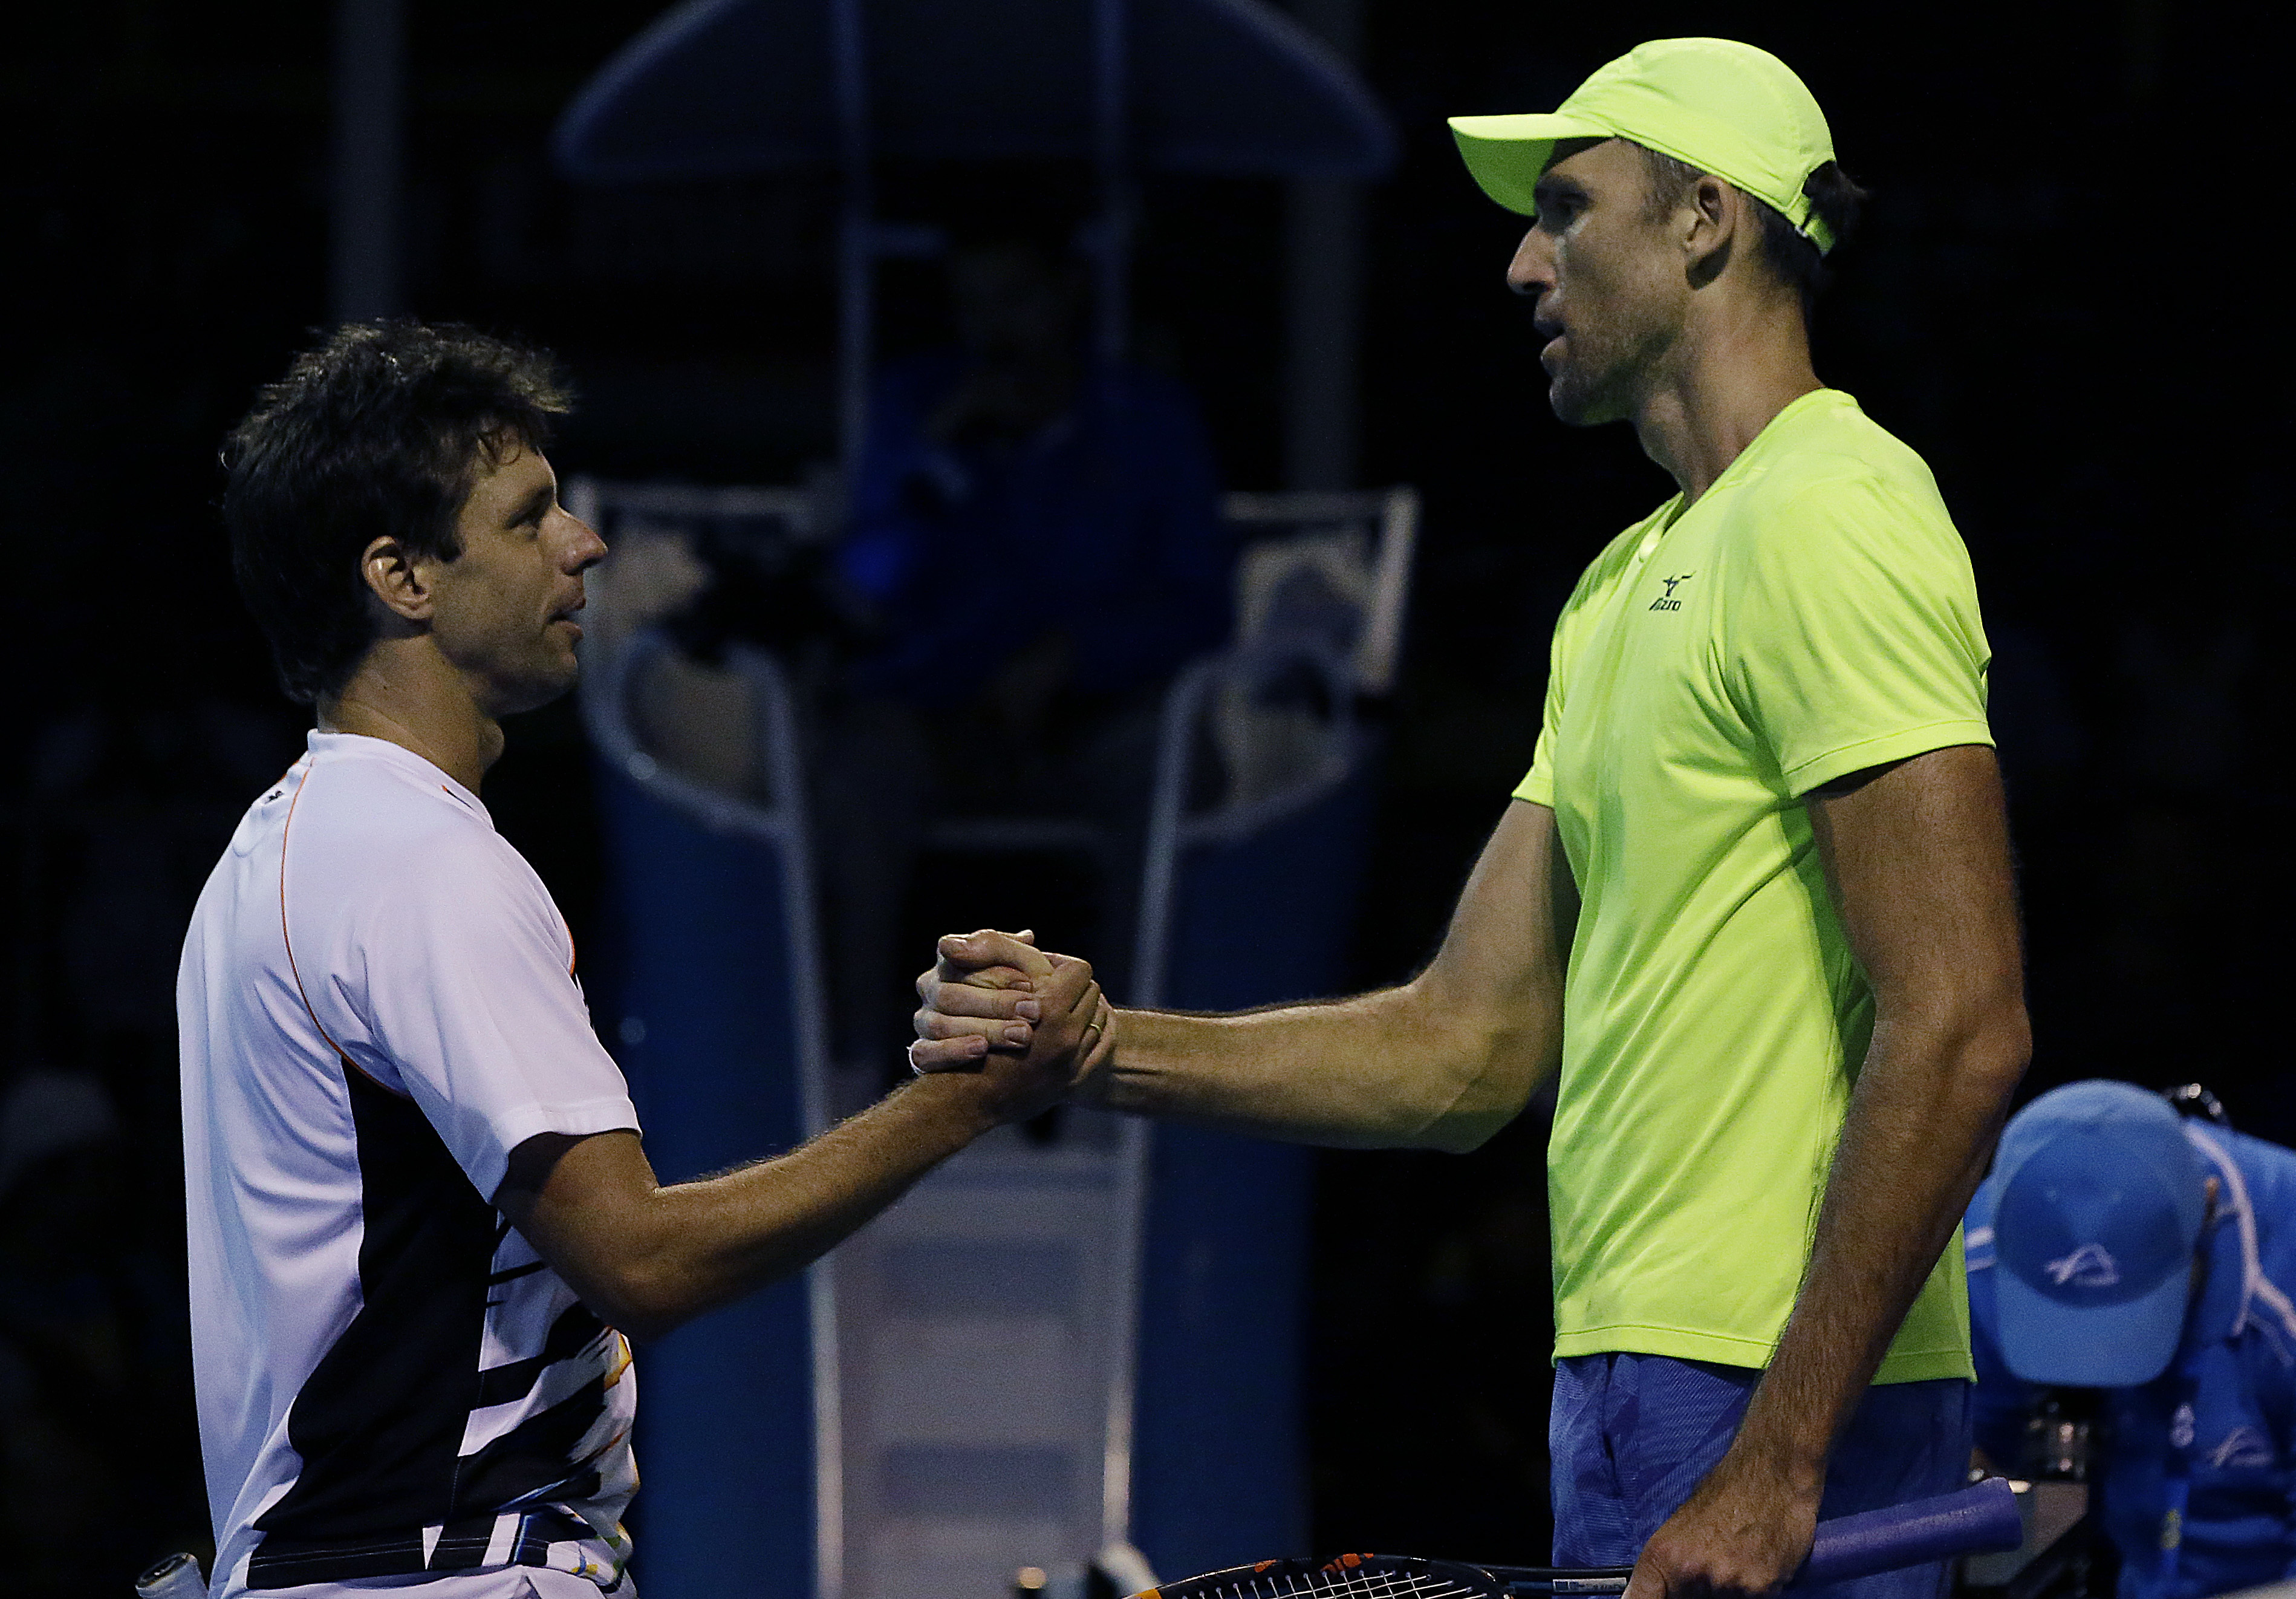 Croatia's Ivo Karlovic, right, is congratulated by Argentina's Horacio Zeballos after winning their first round match at the Australian Open tennis championships in Melbourne, Australia, Tuesday, Jan. 17, 2017. (AP Photo/Aaron Favila)